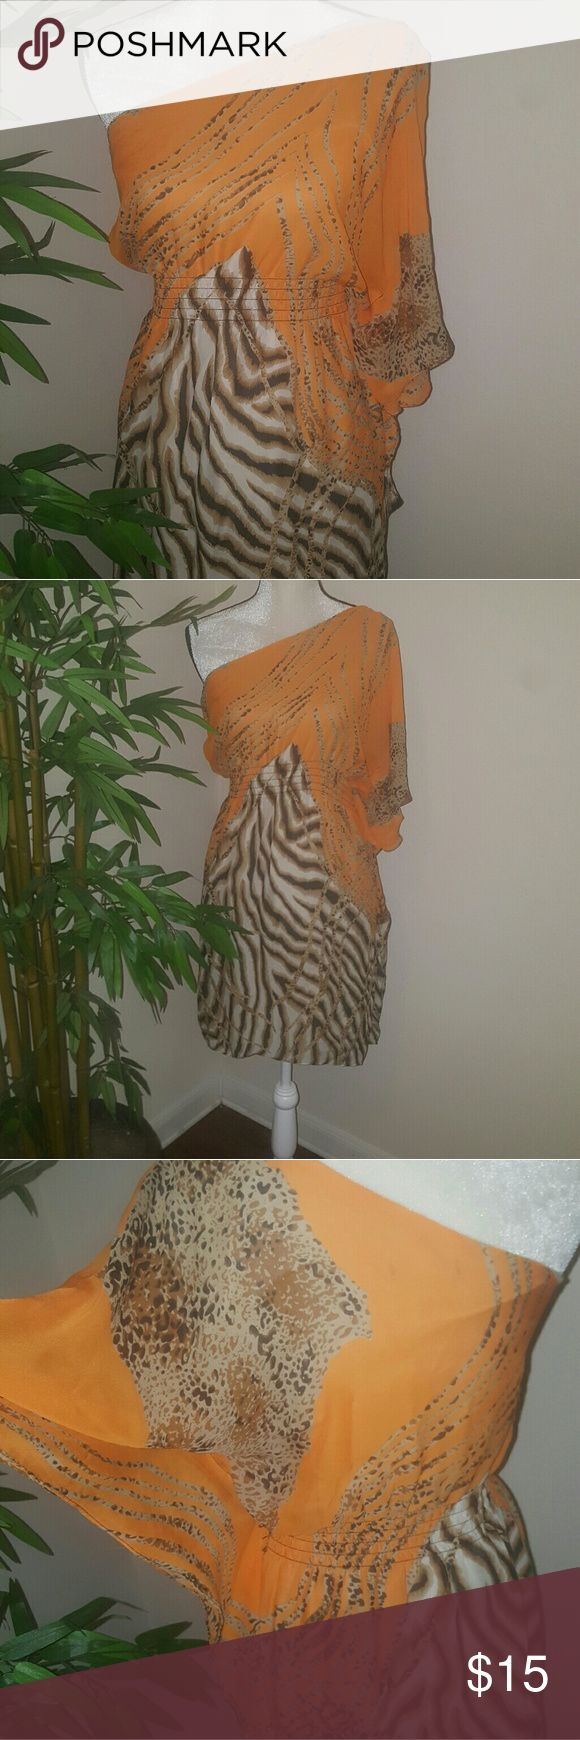 One Shoulder Dress vibrant orange with leopard pri Bisous Bisous one arm shoulder shear type of material with a stretchy gathered material in the waist for a beautiful fits vibrant Orange/ brown leopard print. Bisous Dresses One Shoulder